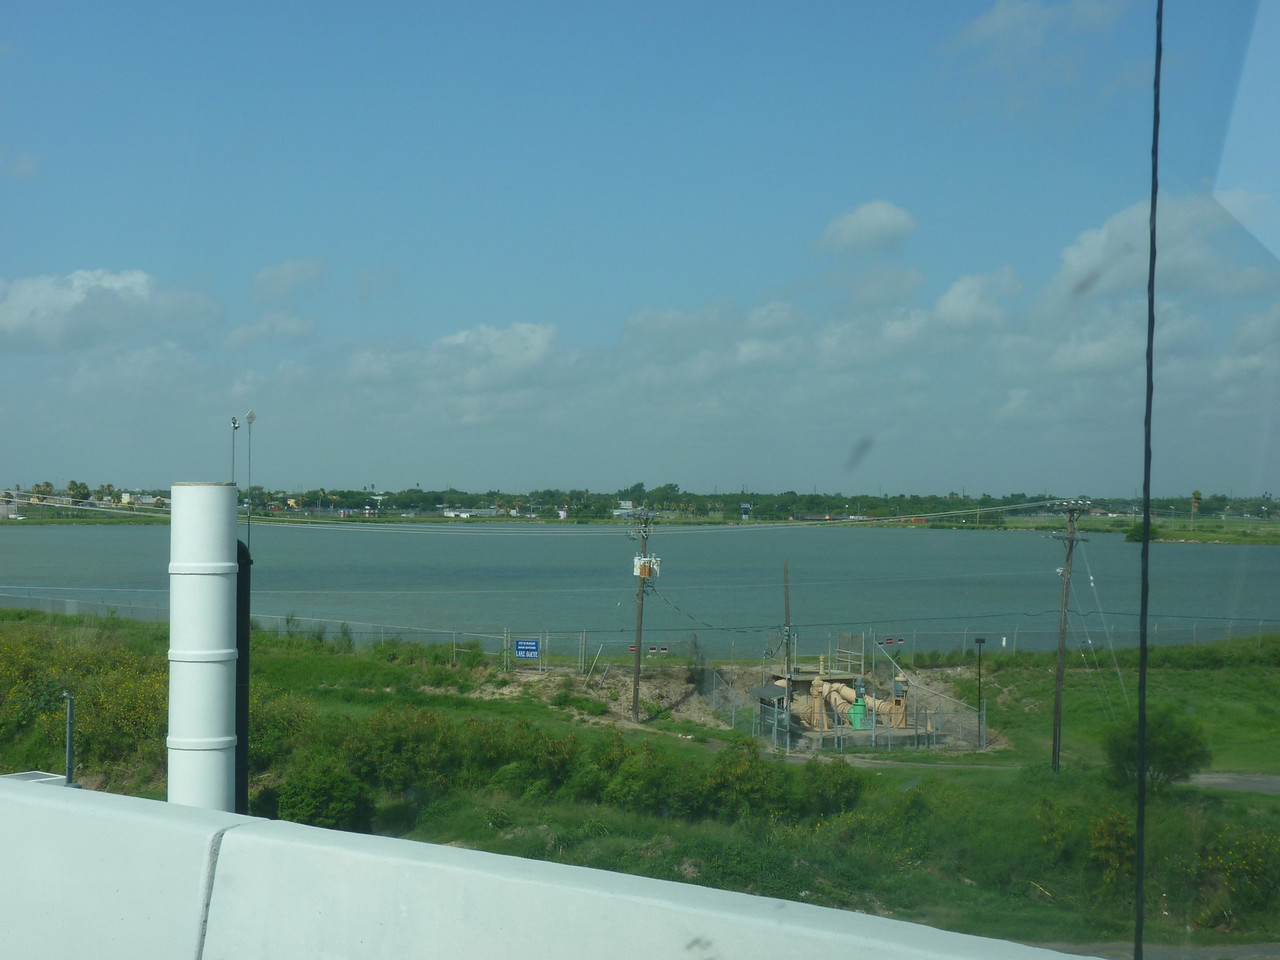 Boeye Reservoir site will be replaced by new reservoir under construction just south of the McAllen International Airport.